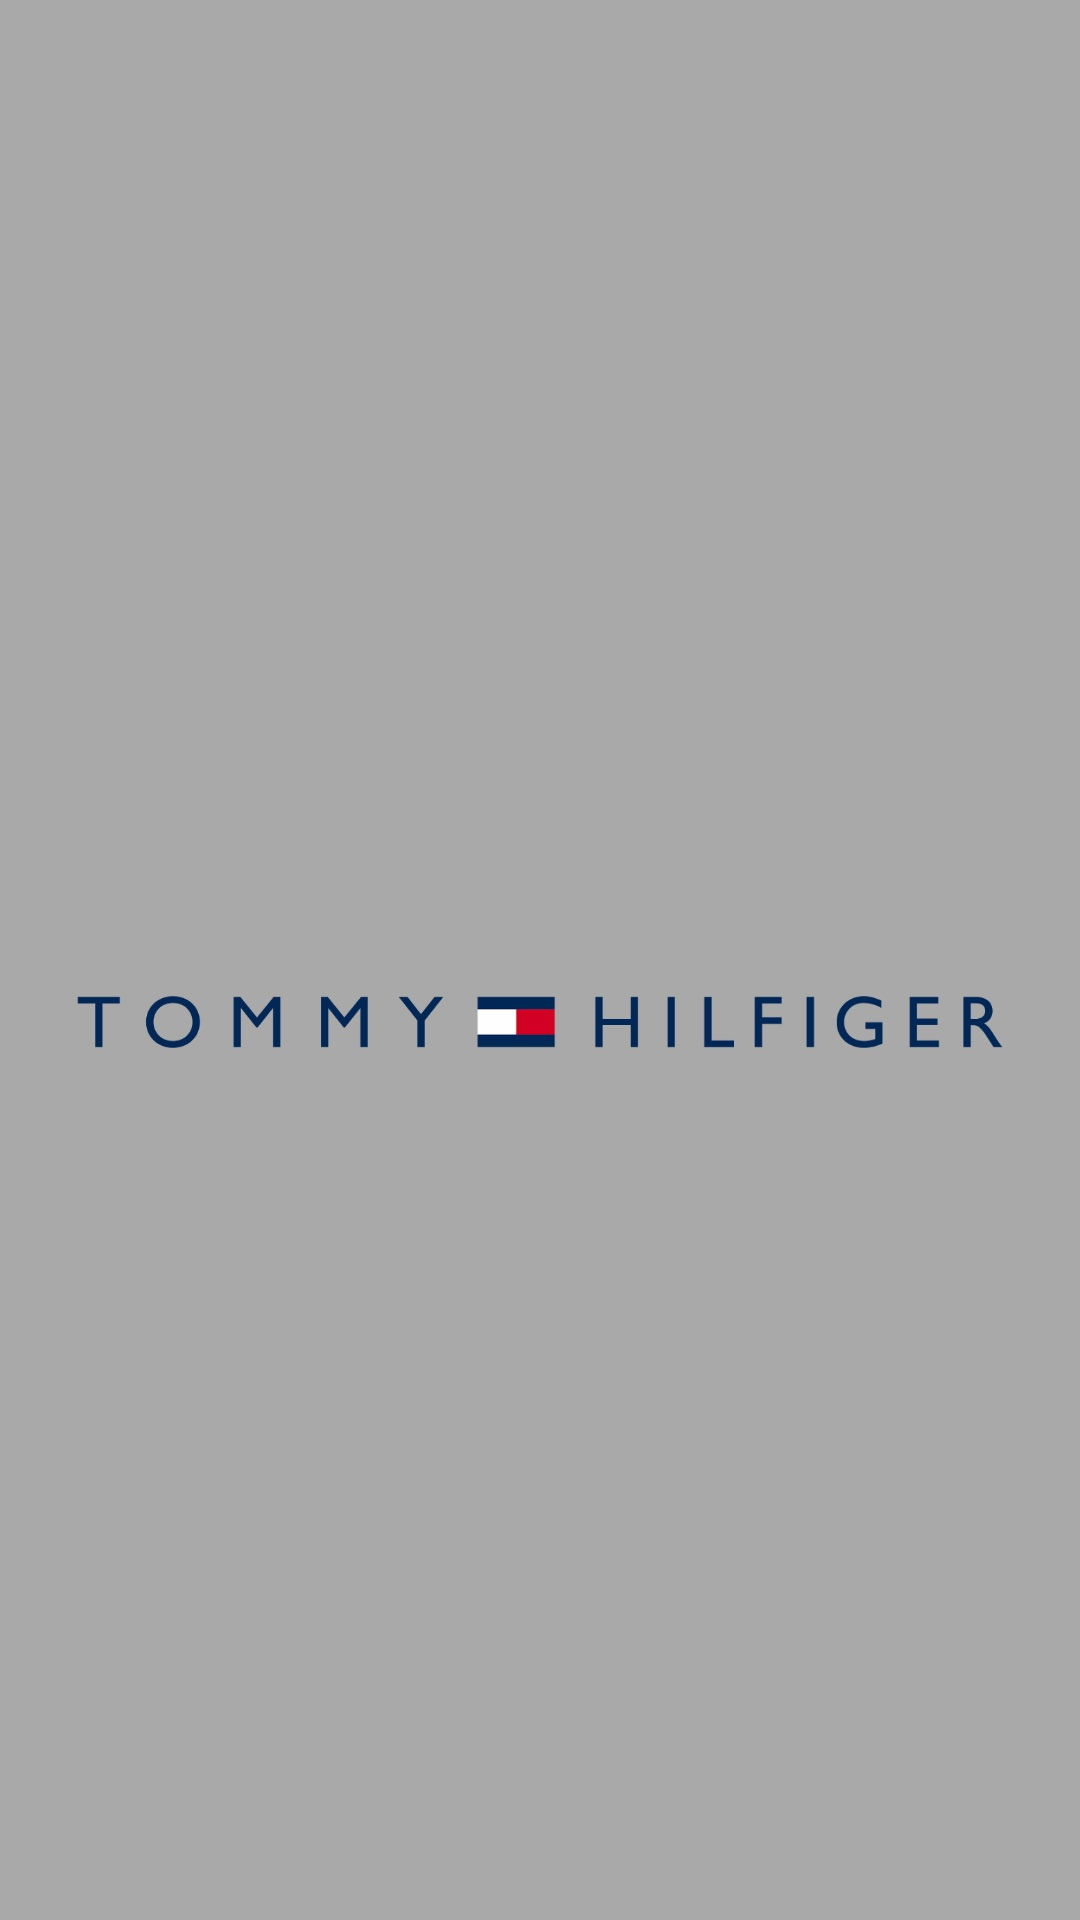 tommyhilfiger06 - TOMMY HILFIGER/トミー・ヒルフィガーの高画質スマホ壁紙20枚 [iPhone&Androidに対応]